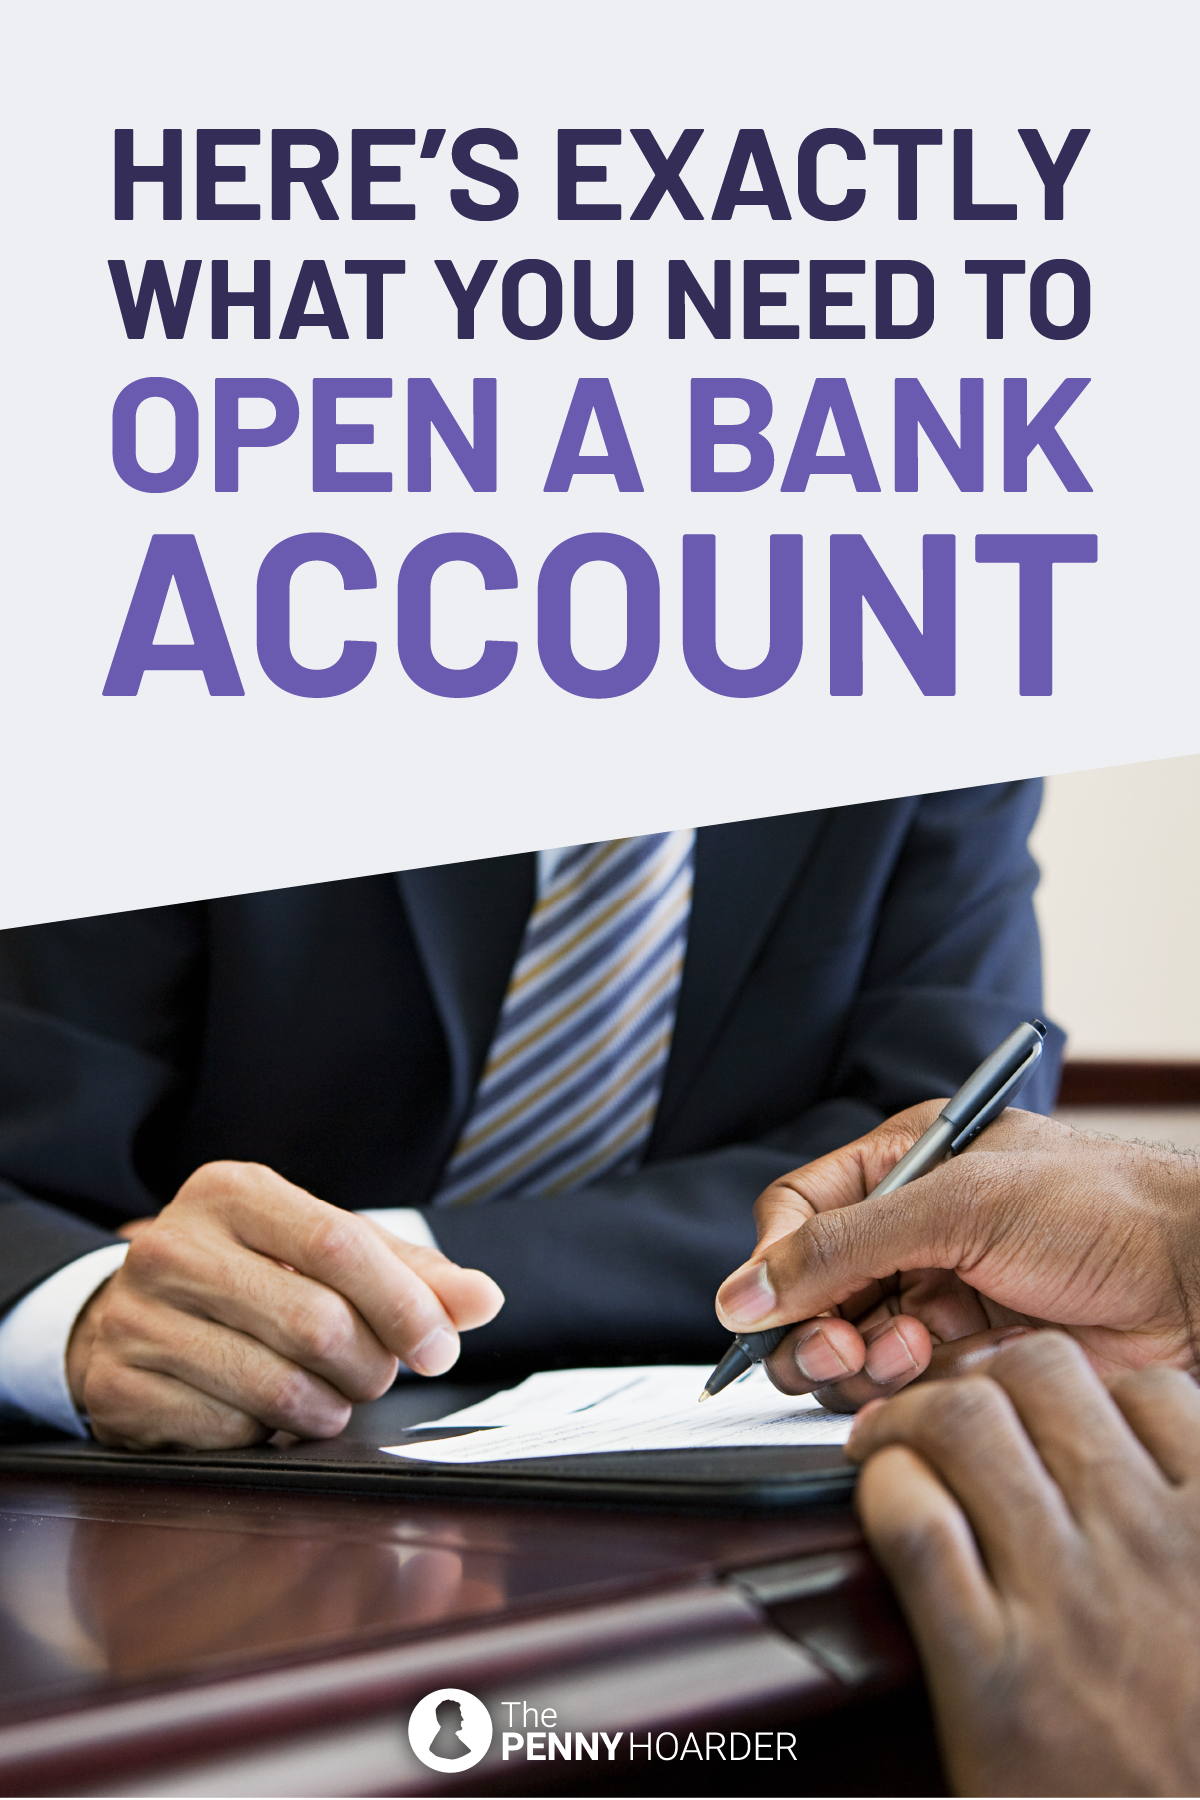 So You Re Ready To Open A Bank Account Here S Exactly What You Need In 2020 With Images Opening A Bank Account Online Bank Account Bank Account